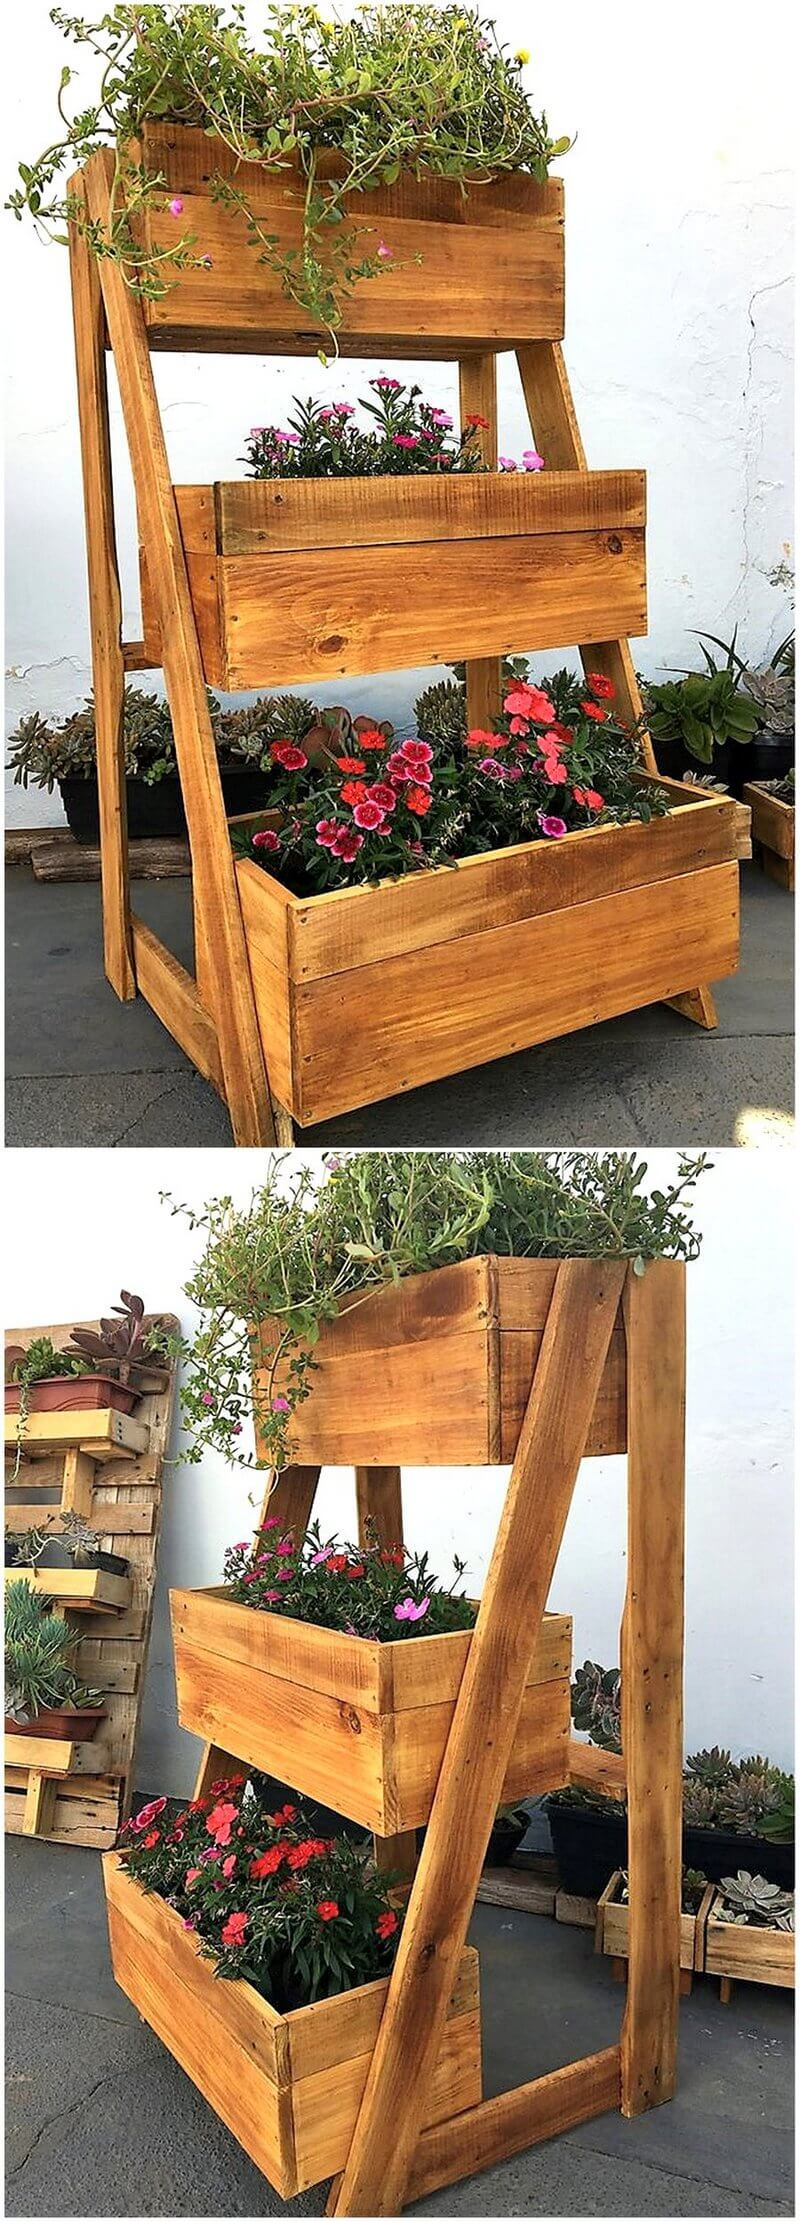 recycled pallet wooden planter